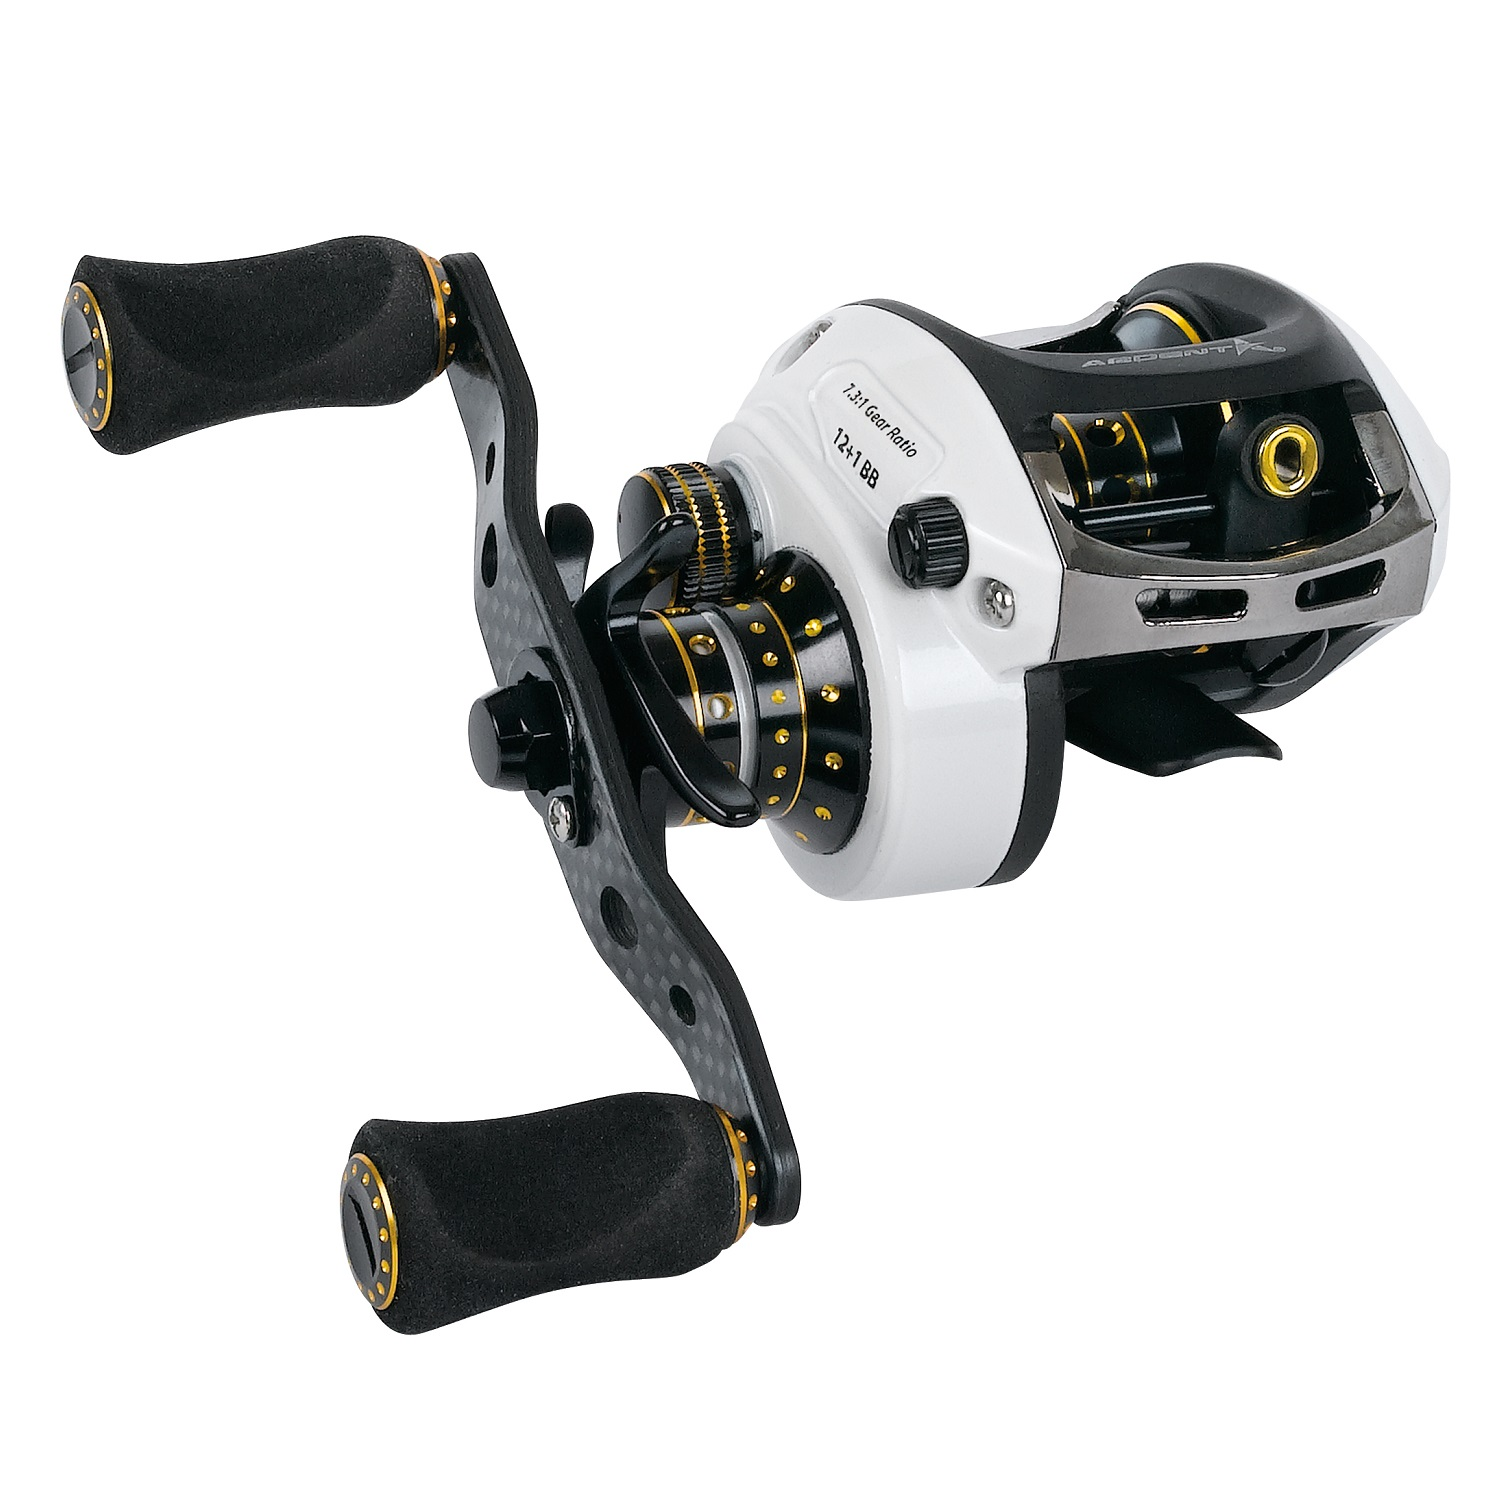 Ardent apex grand baitcast reel 7 3 1 right hand for Ardent fishing reels